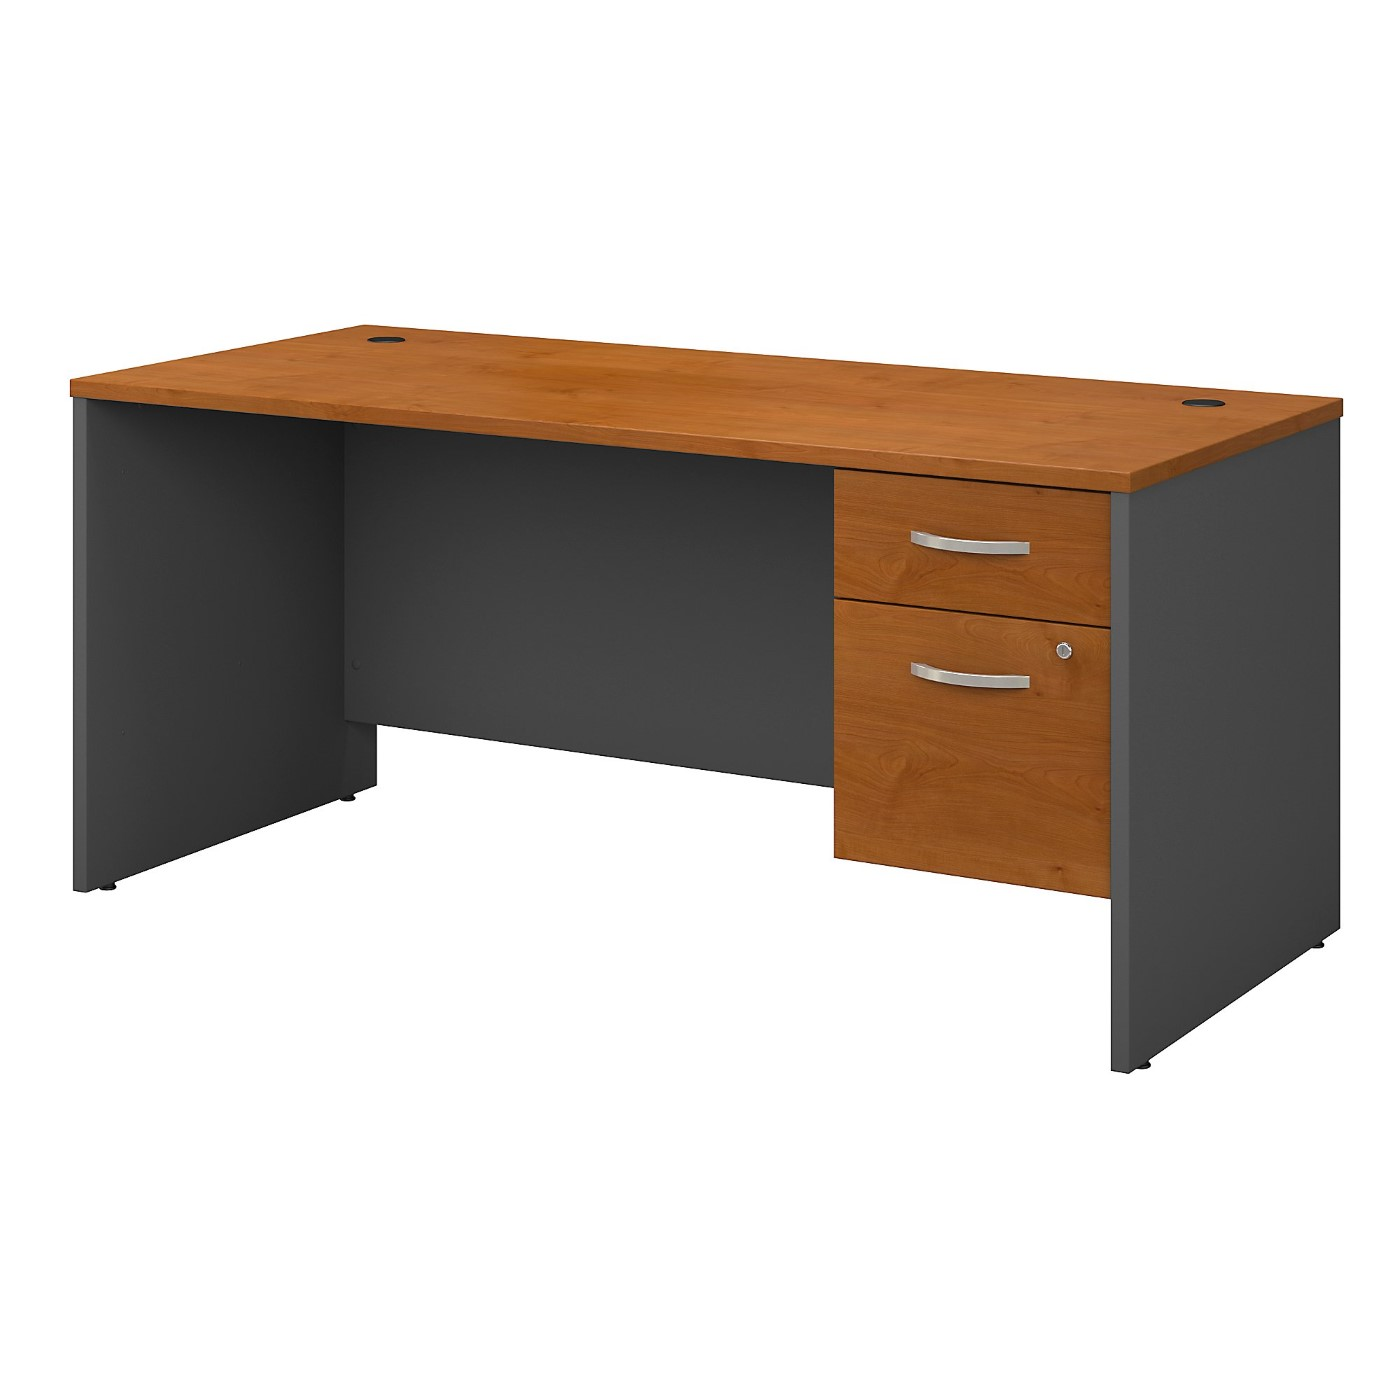 BUSH BUSINESS FURNITURE SERIES C 66W X 30D OFFICE DESK WITH 3/4 PEDESTAL. FREE SHIPPING